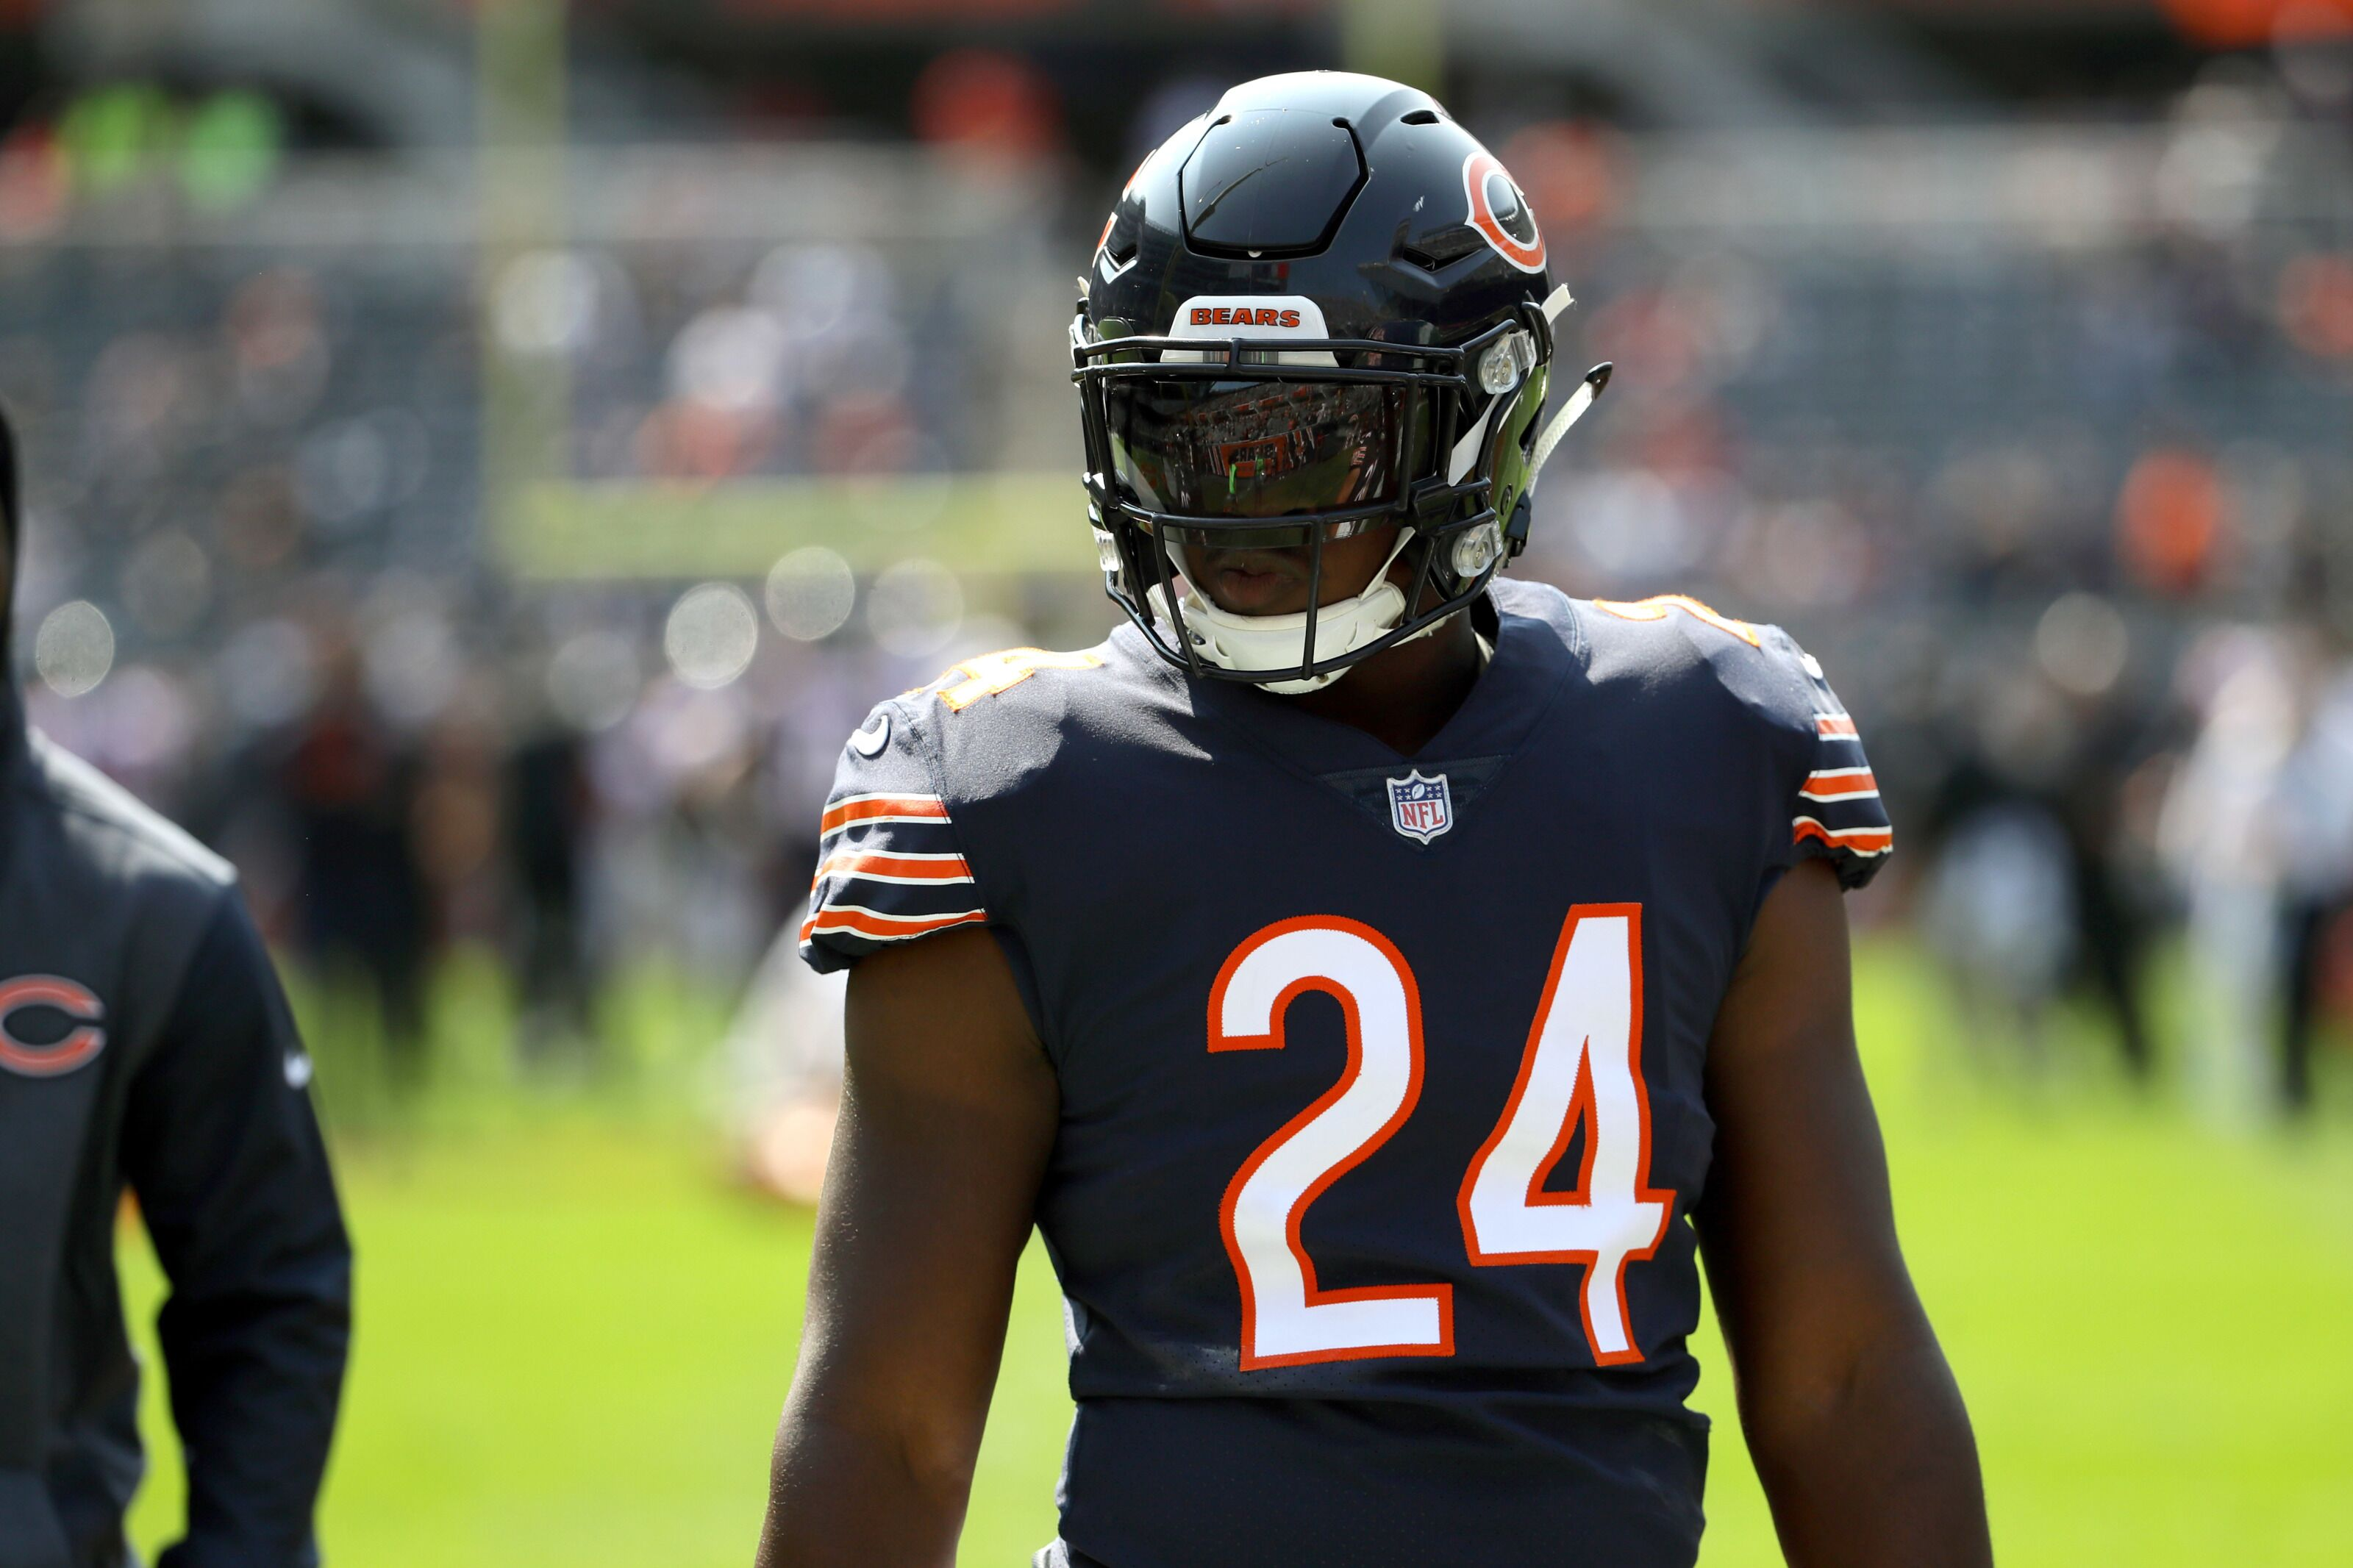 Chicago Bears: Jordan Howard will make you eat your words in 2018